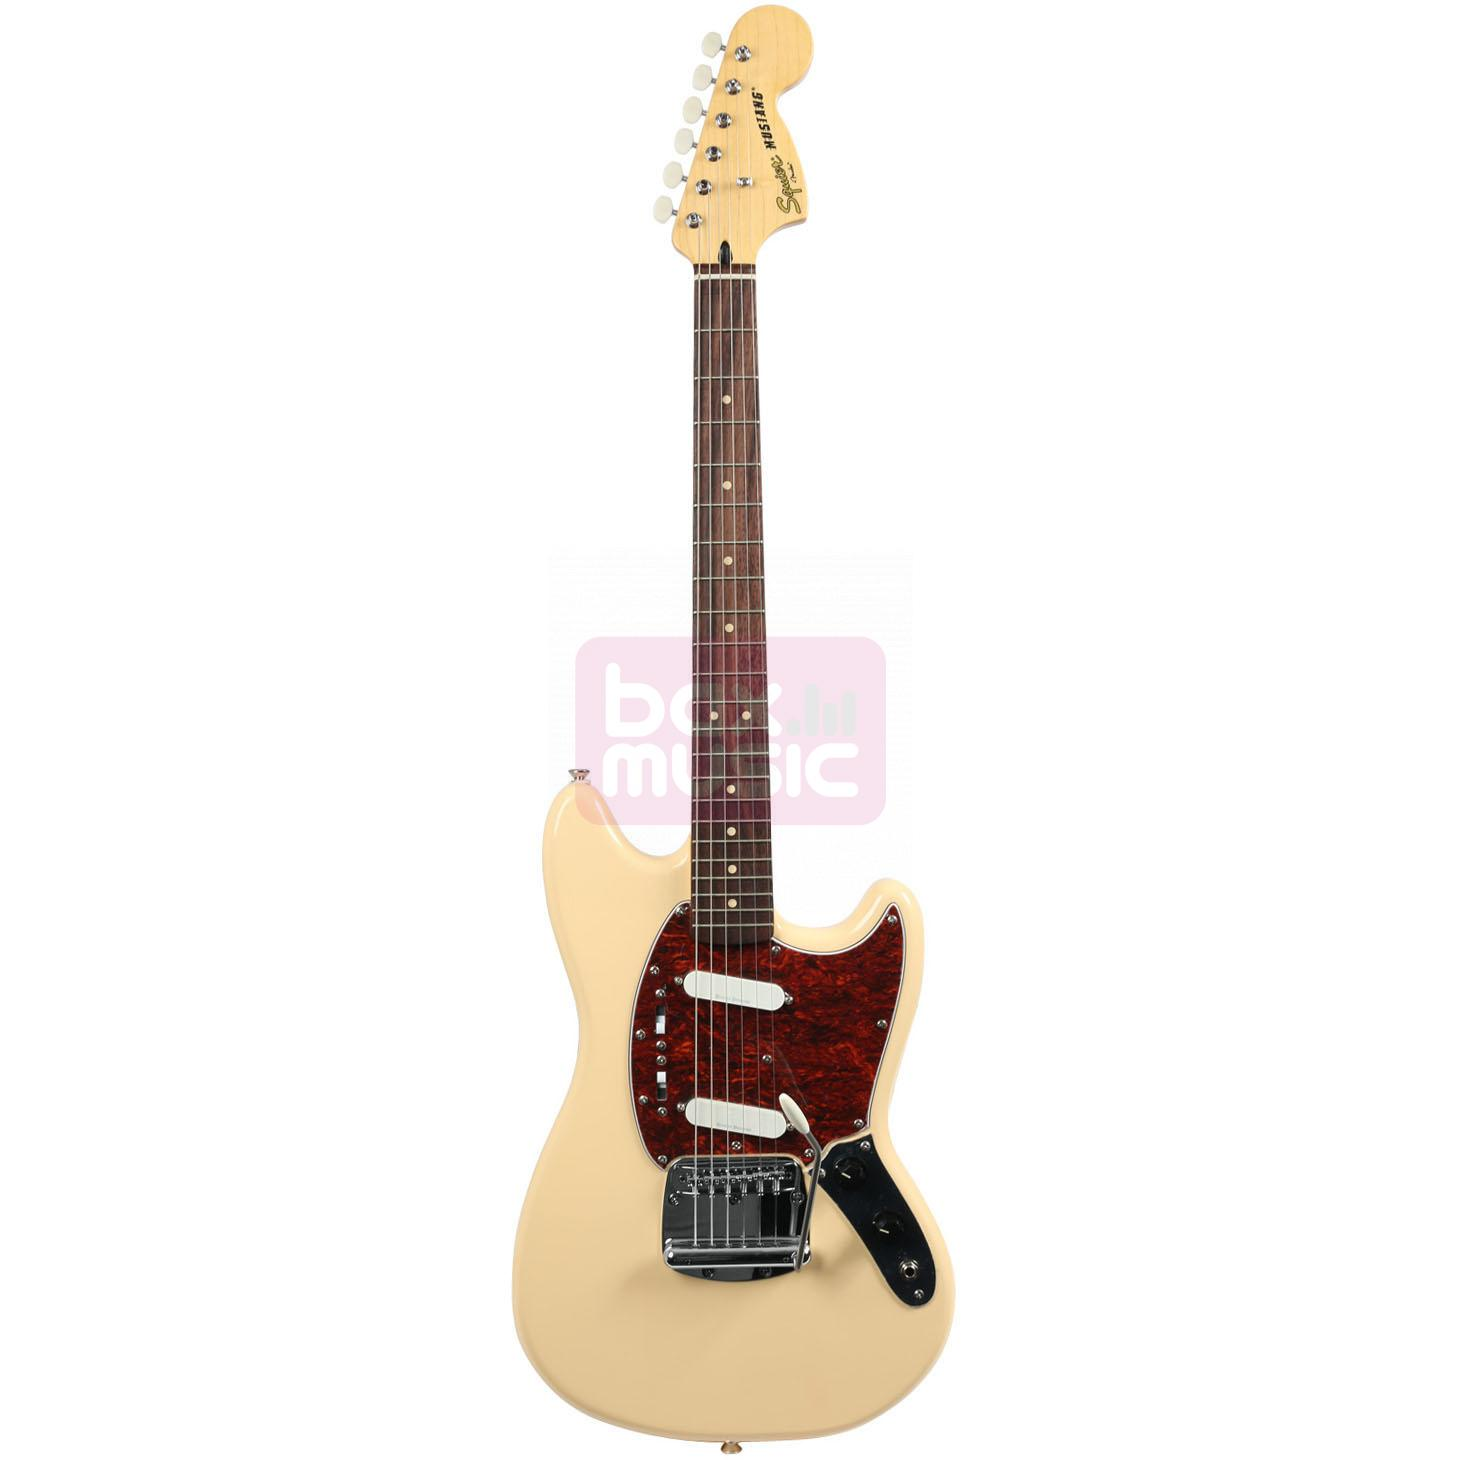 Squier Vintage Modified Mustang Vintage White RW